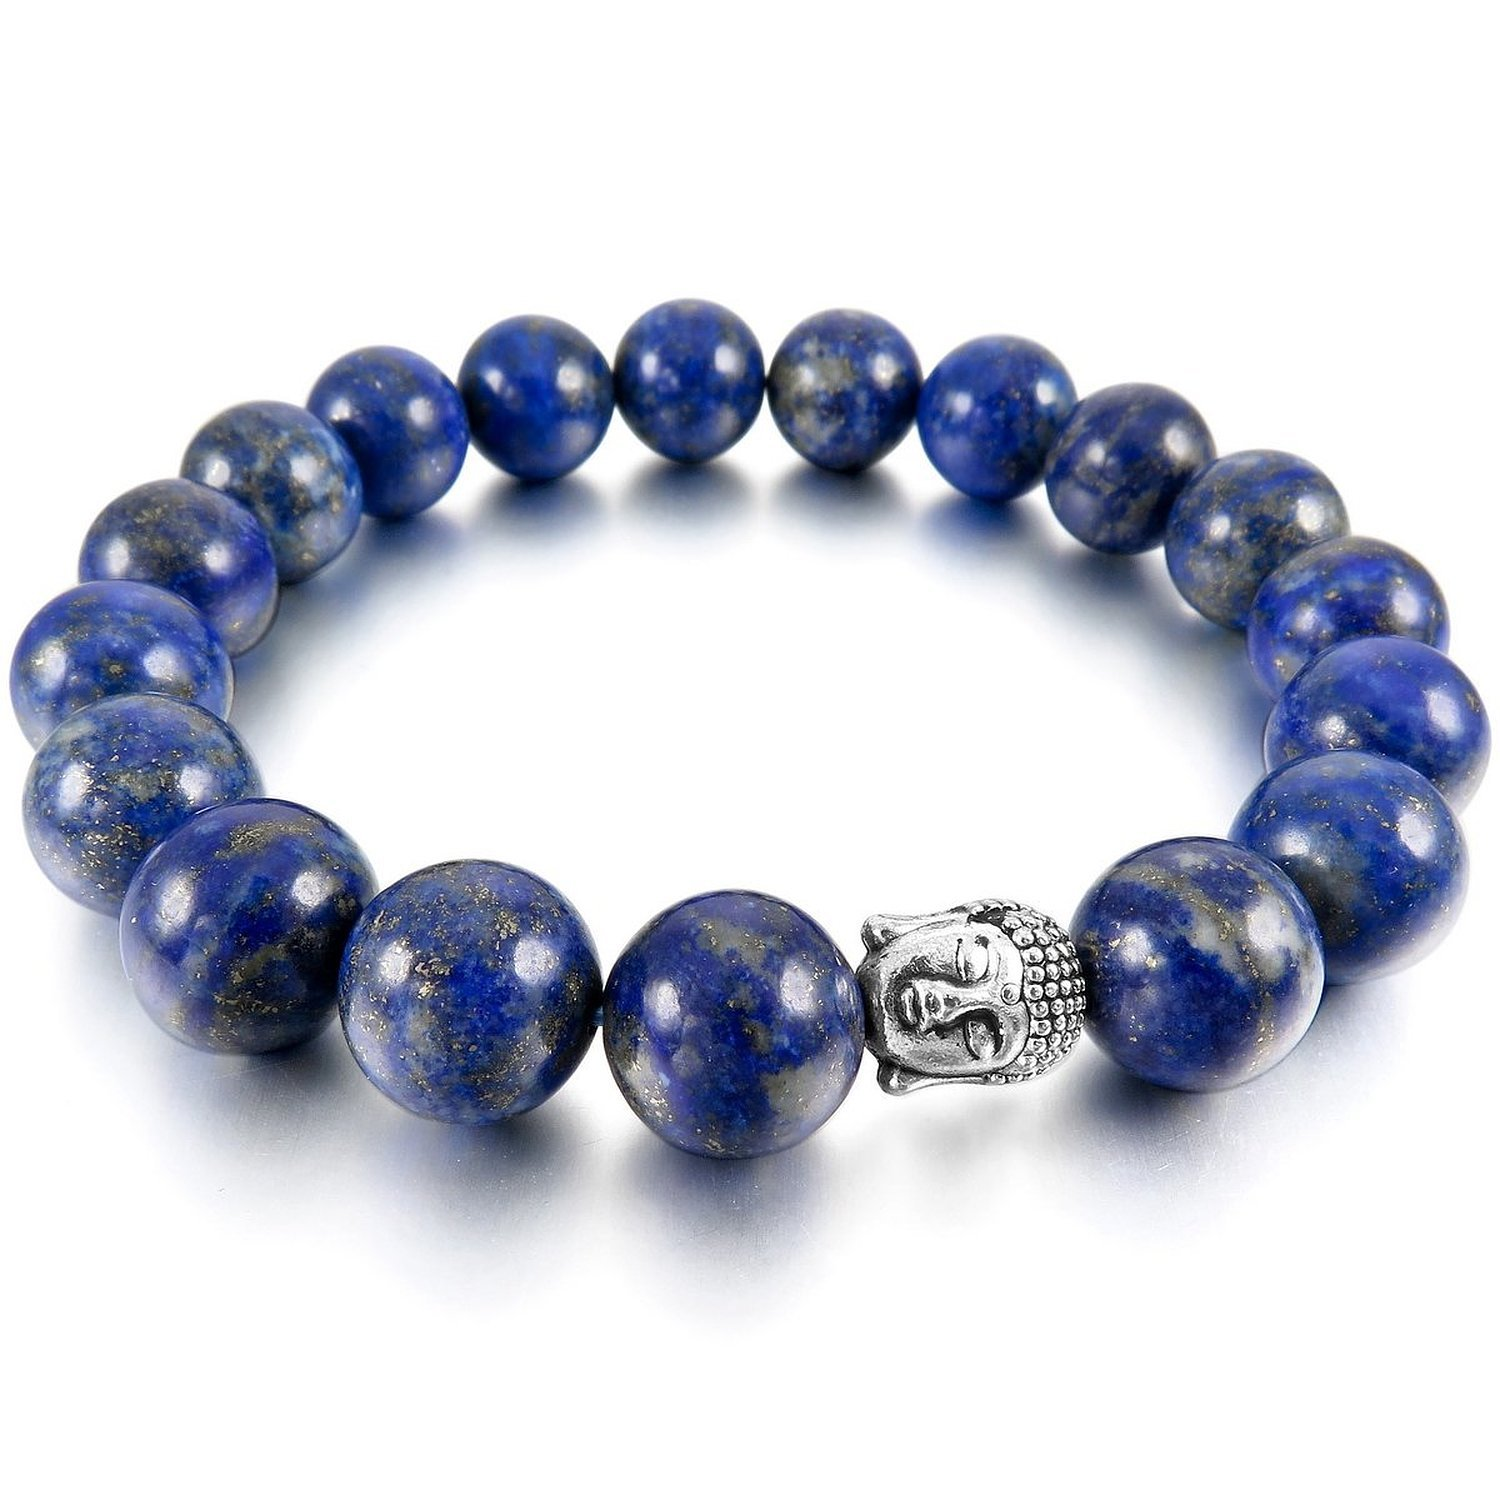 TEMEGO Jewelry Womens Mens Natural Energy Stone Classic Beads Stretch Bracelet, Link Wrist Buddha Mala Bracelet, Blue Silver,10-12mm 201500016